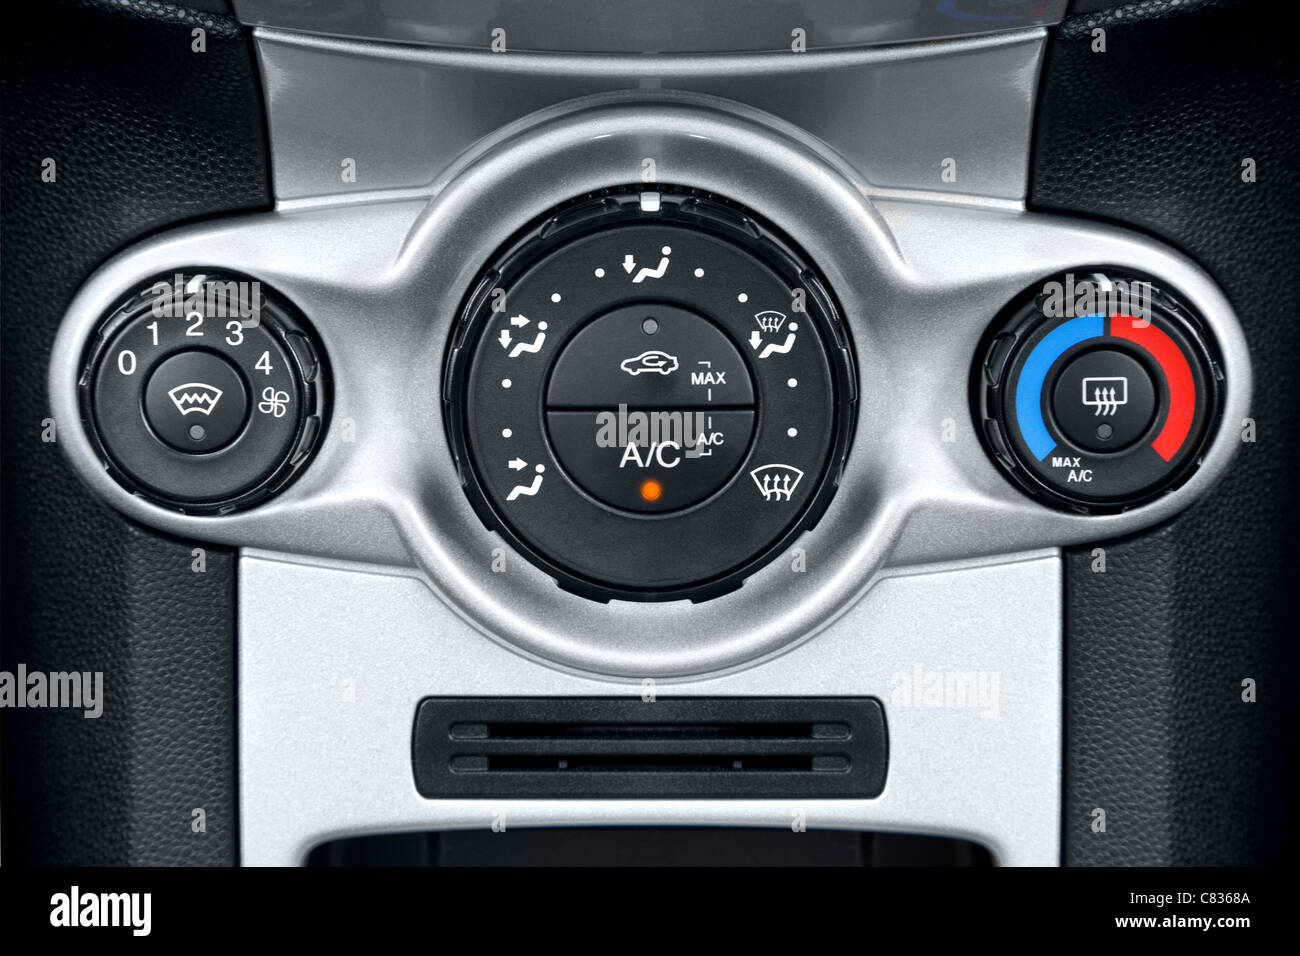 Air Conditioning Switch Stock Photos Mitsubishi Thermostat Controller Photo Of The Controls On A Cars Dashboard Image